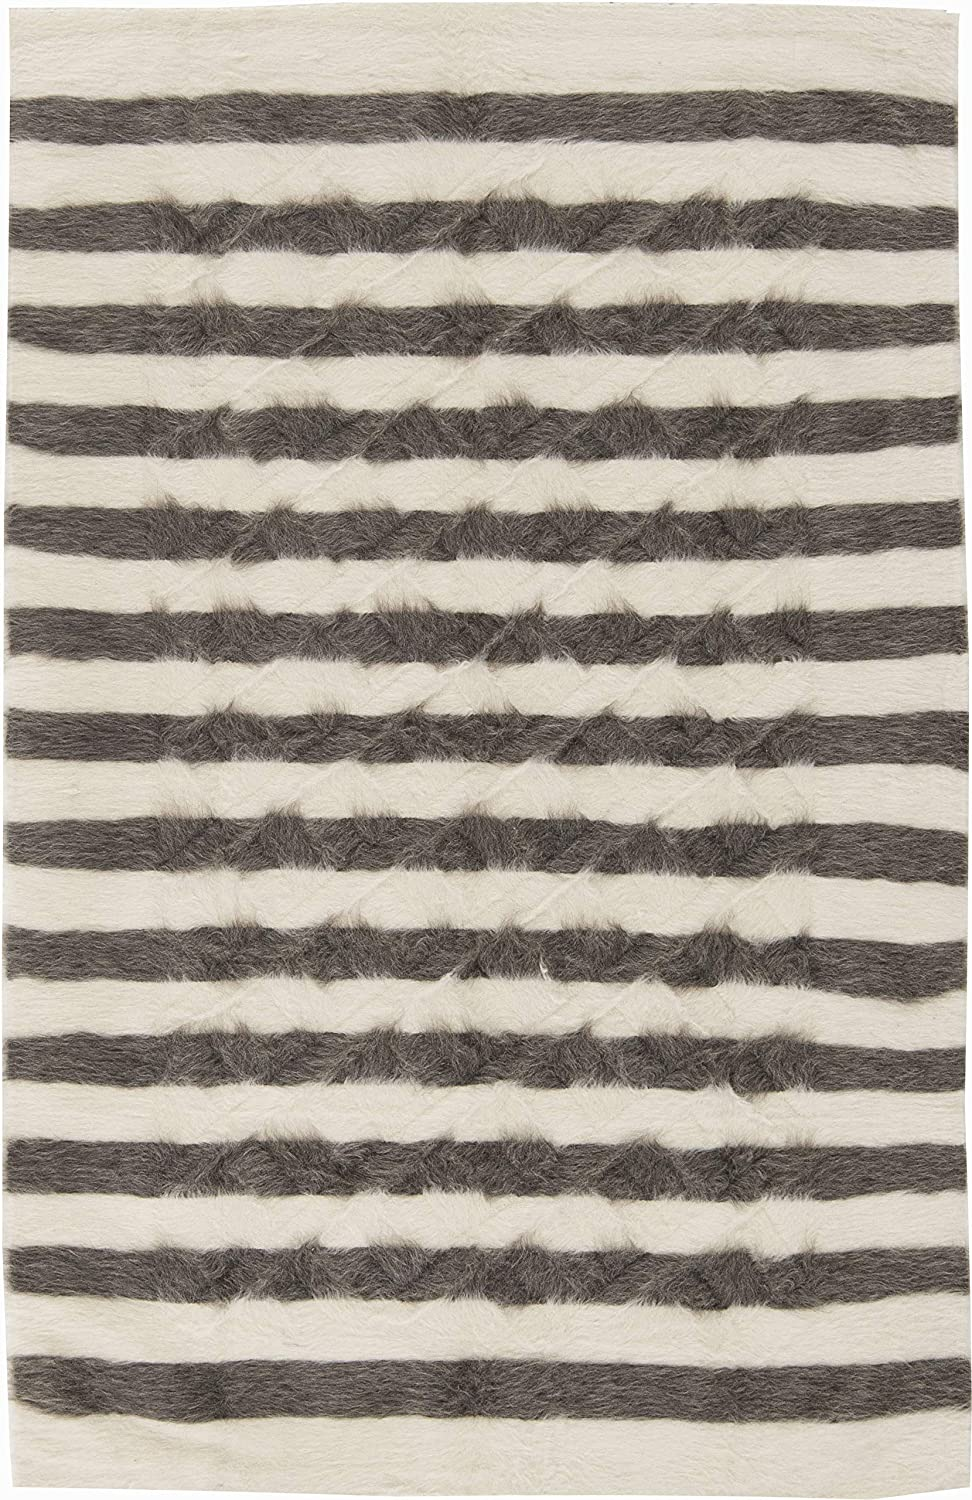 4' x 6' Modern Striped Creamy Taurus and Collect Manufacturer OFFicial shop White Direct sale of manufacturer Dark Gray